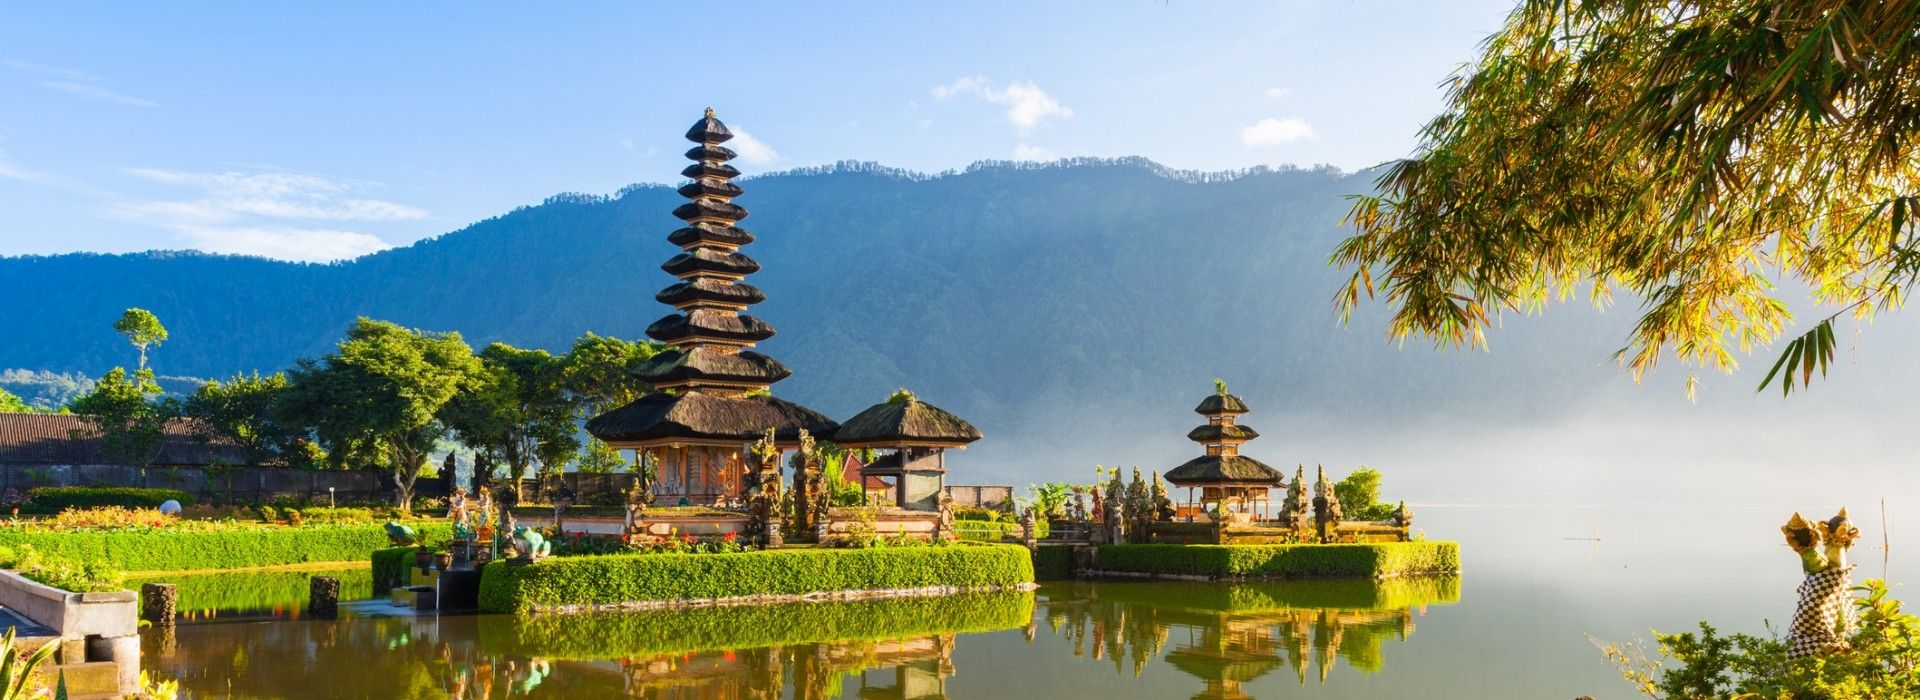 Beach, romance, getaways and relaxation Tours in Indonesia